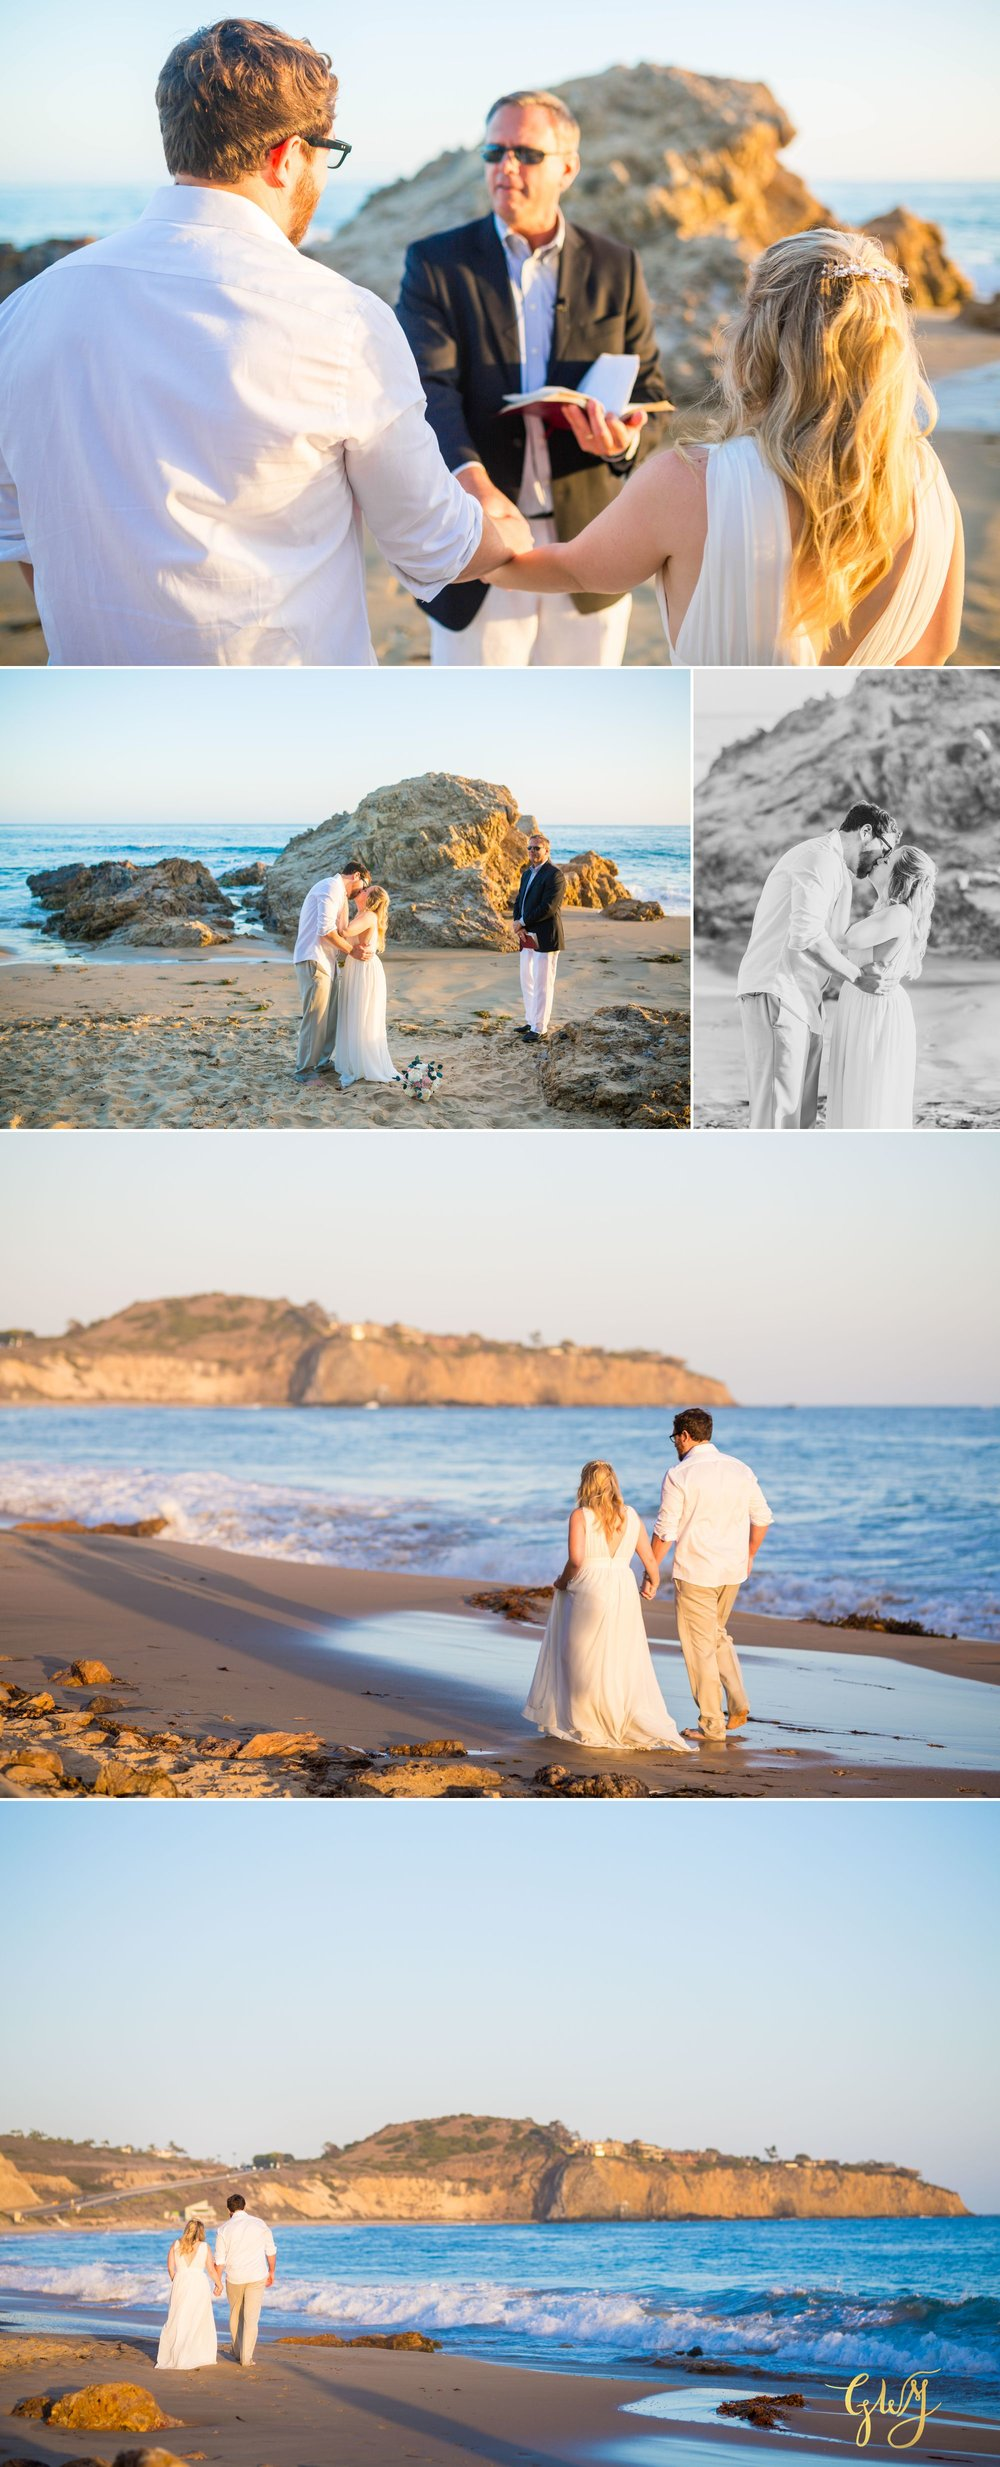 Amanda + Joe Reef Point Crystal Cove Newport Beach Sunset Romantic Intimate Elopement by Glass Woods Media 13.jpg